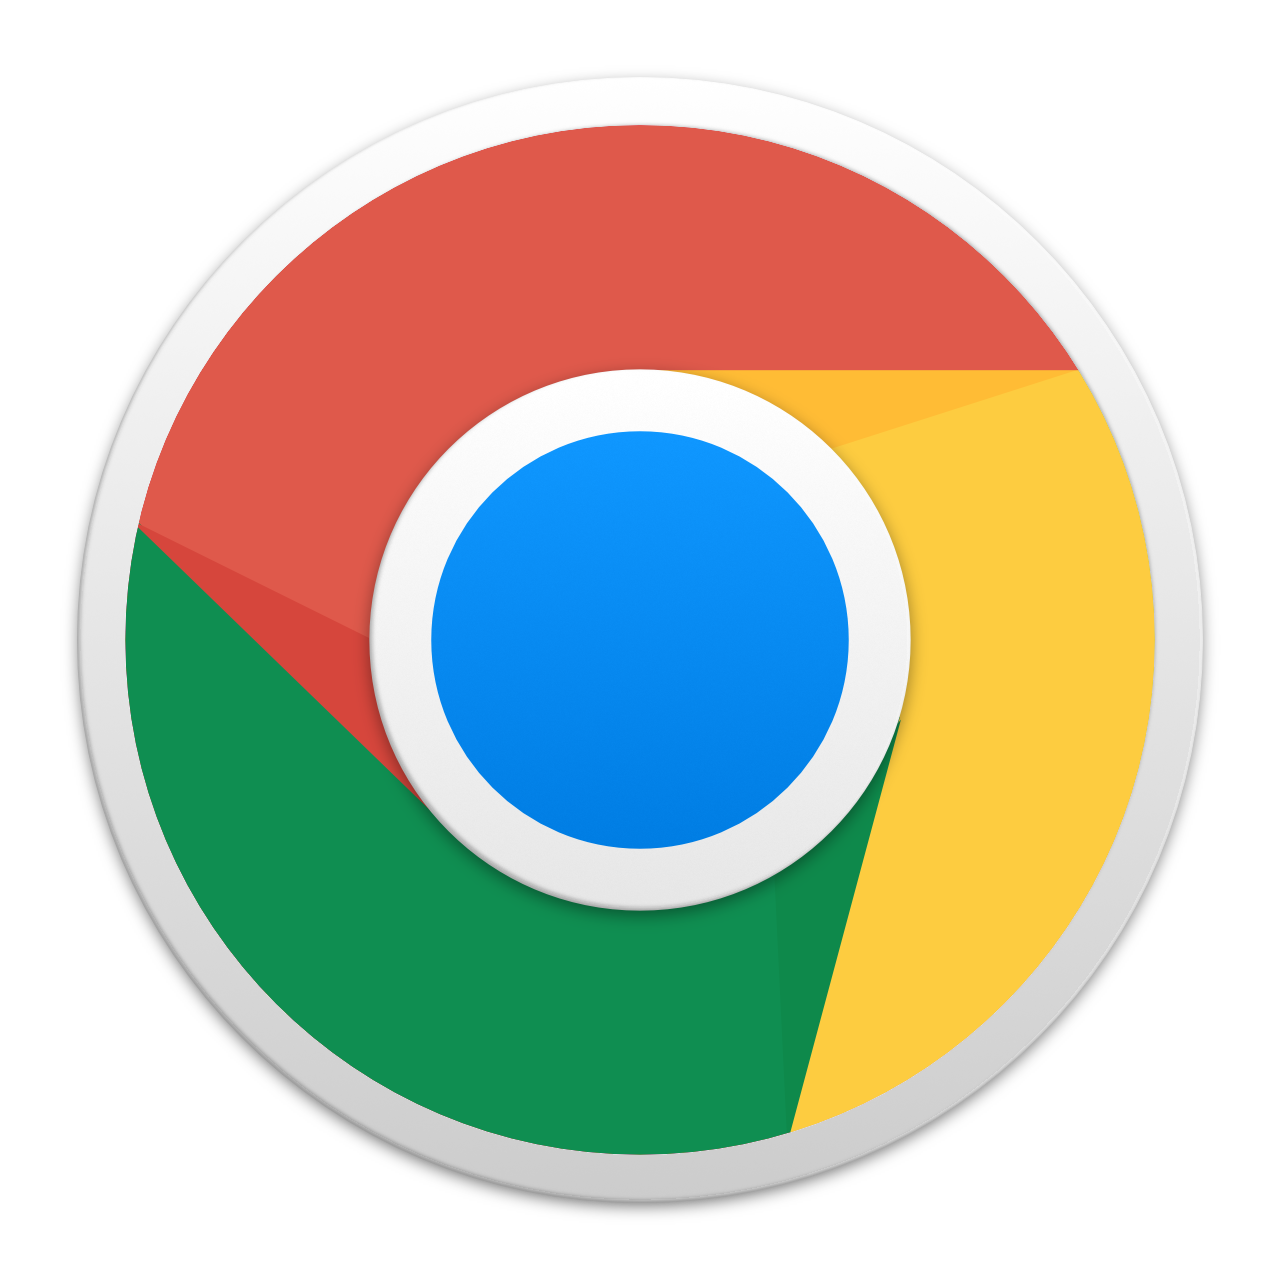 256x256 png images. Chrome logo free download